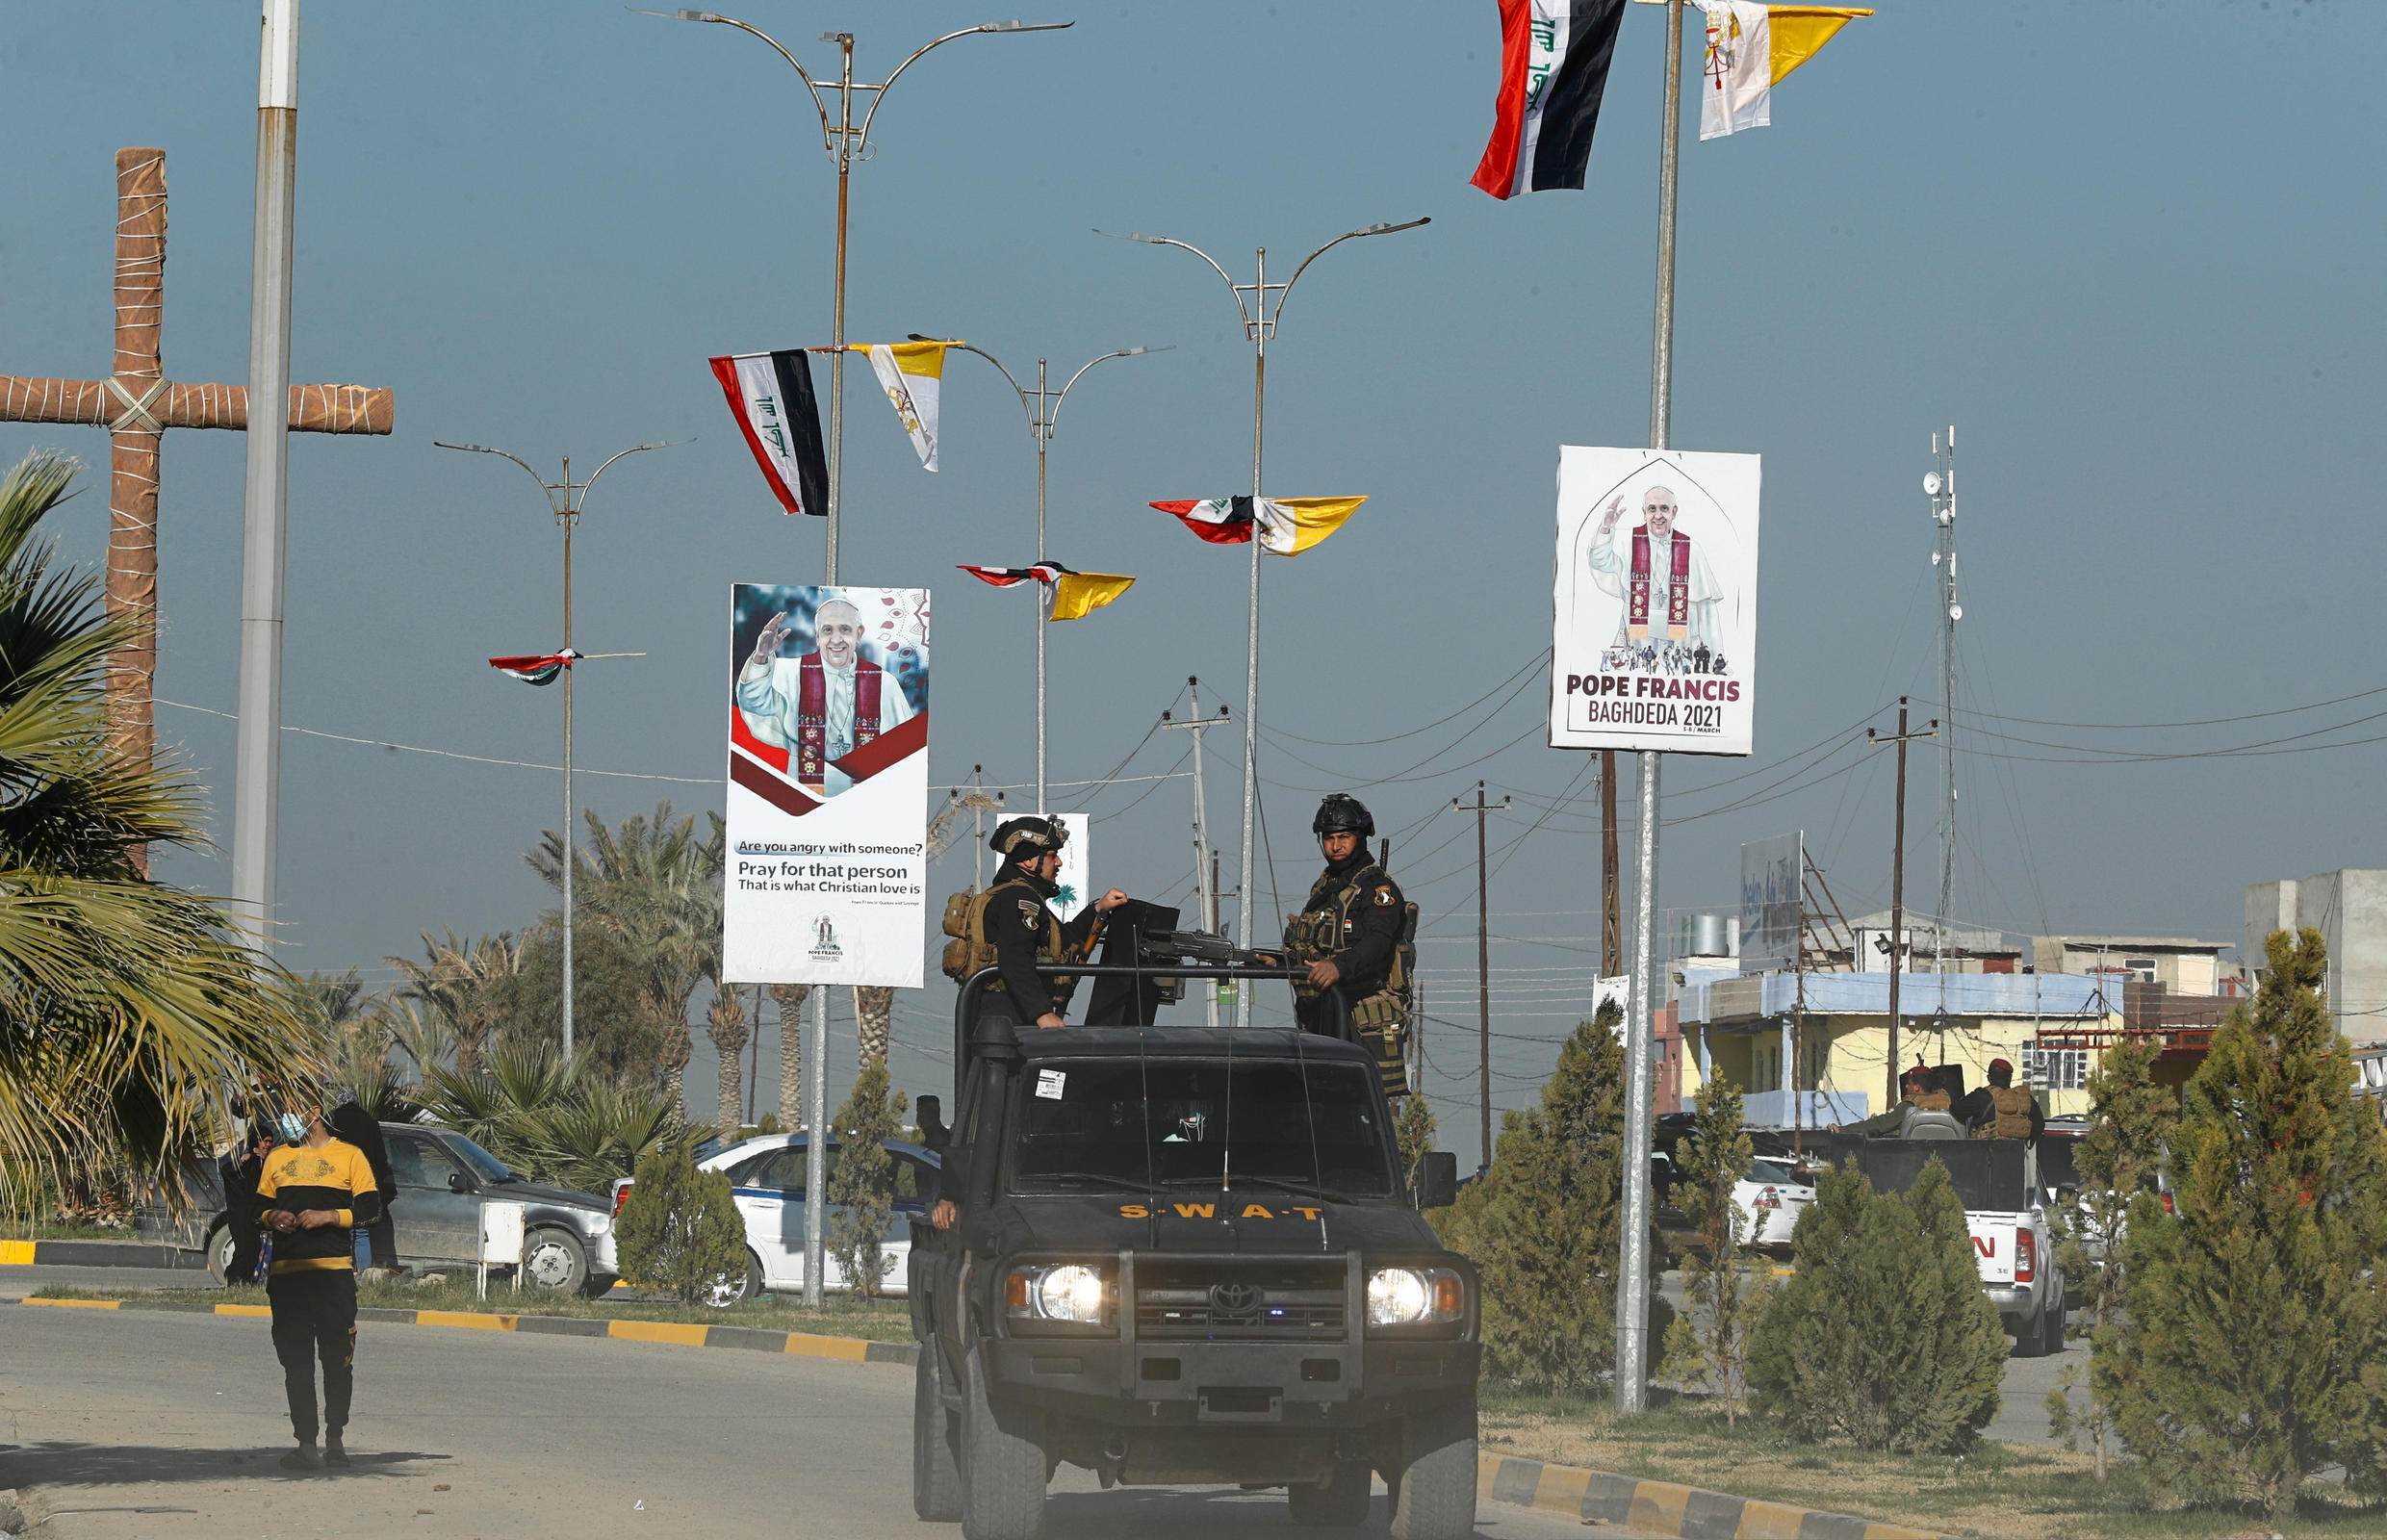 Iraqi security forces pass by Iraq and the Vatican flags and posters announcing visit of the Pope Francis in a street in Qaraqosh, Iraq, Monday, Feb. 22, 2021. Iraq was estimated to have more than 1 million Christians before the 2003 U.S.-led invasion that toppled dictator Saddam Hussein.  Now, church officials estimate only few hundred remain within Iraq borders. The rest are scattered across the globe, resettling in far-flung places like Australia, Canada and Sweden as well as neighboring countries.